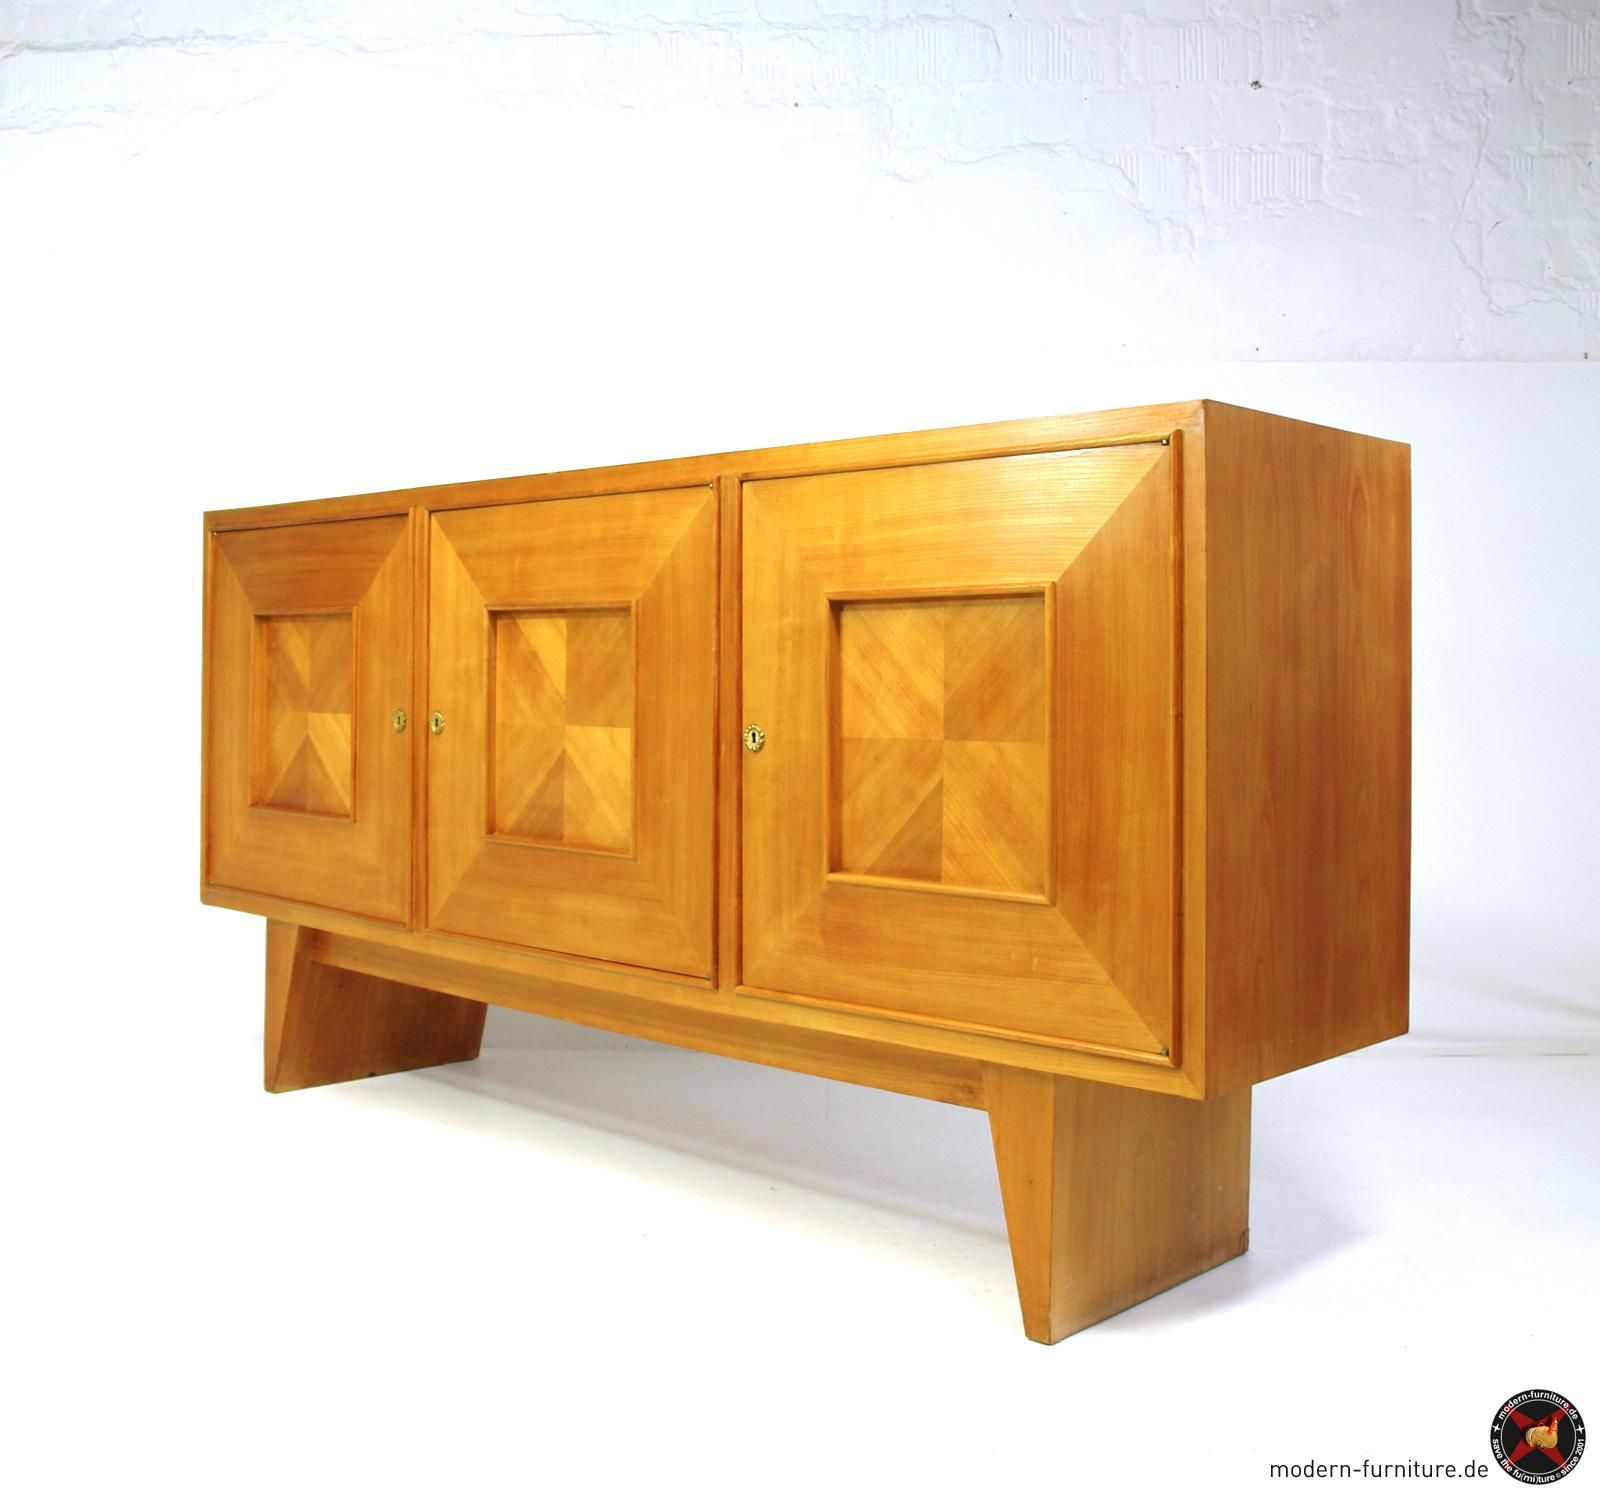 Bahut Art Deco Areaneo Suzanne Guiguichon French Modernist Art Deco Sideboard